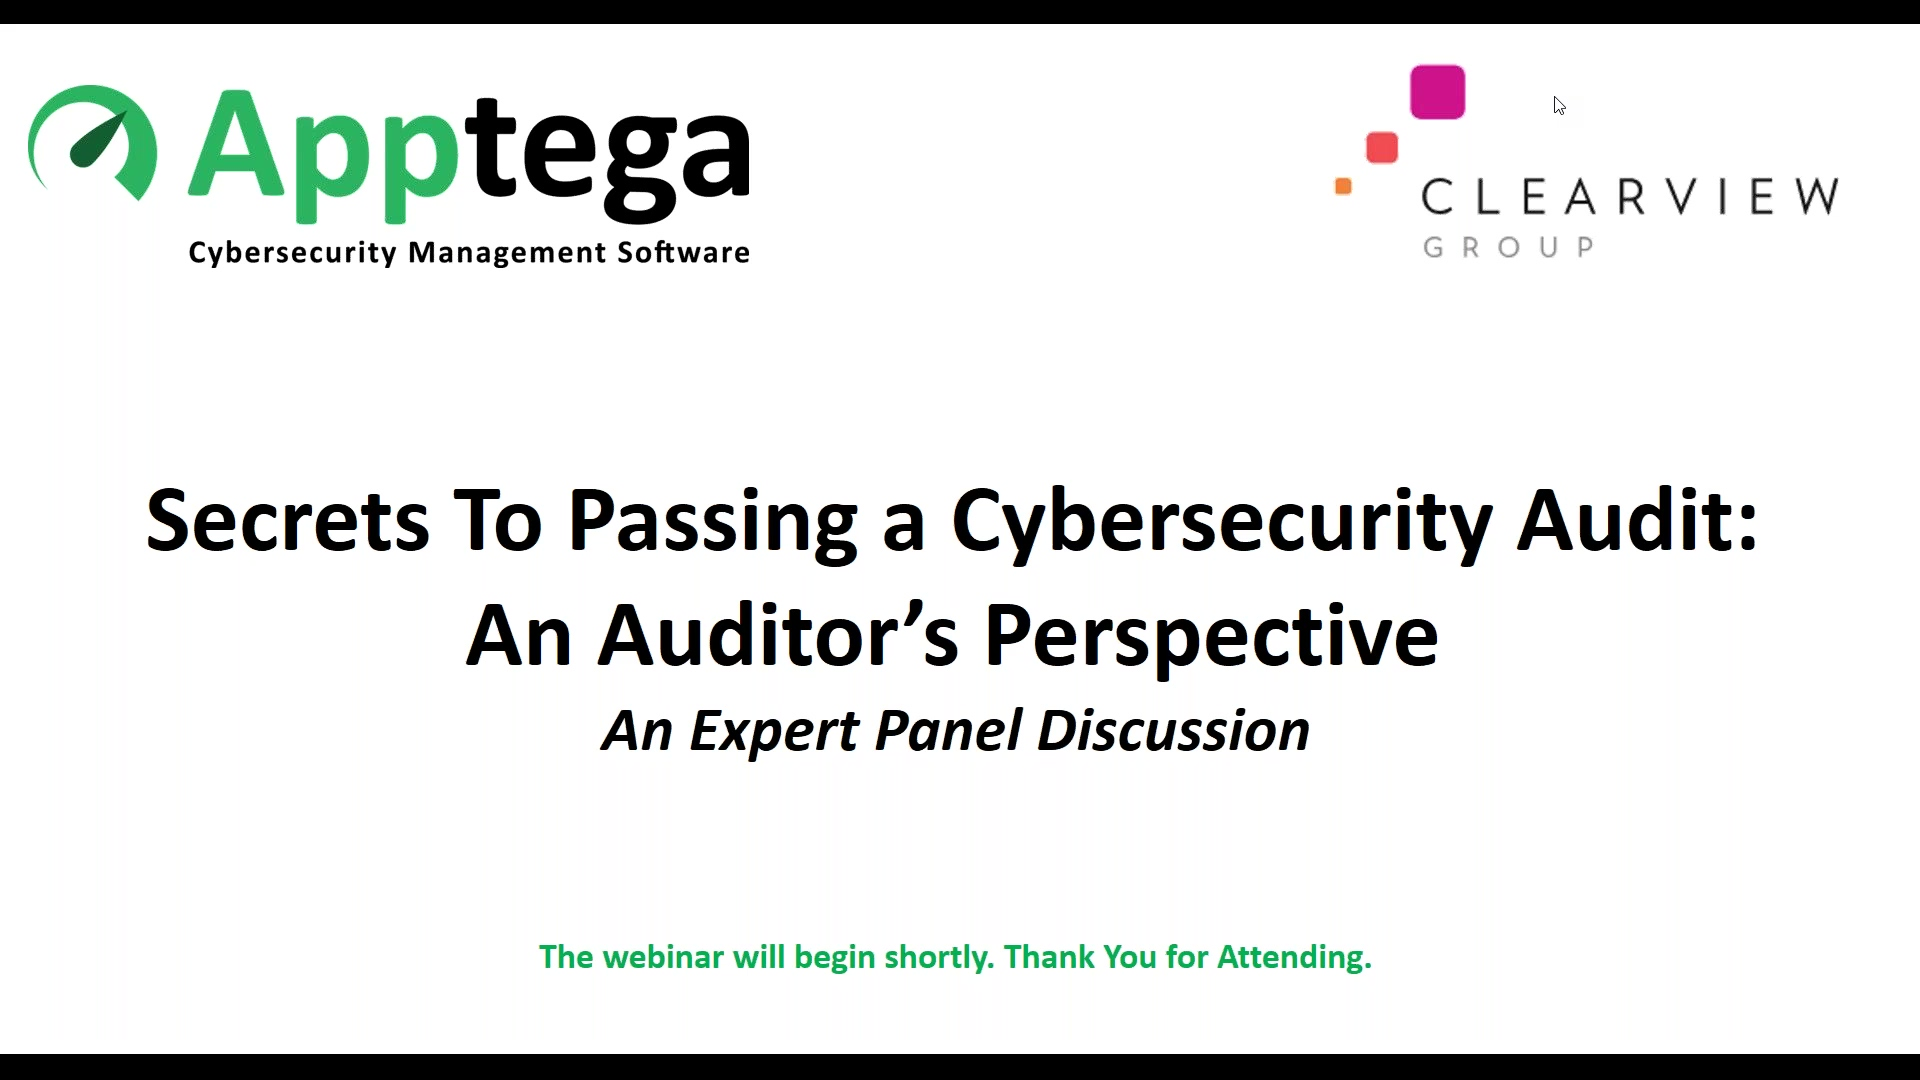 Secrets To Passing A Cybersecurity Audit_ An Auditor's Perspective